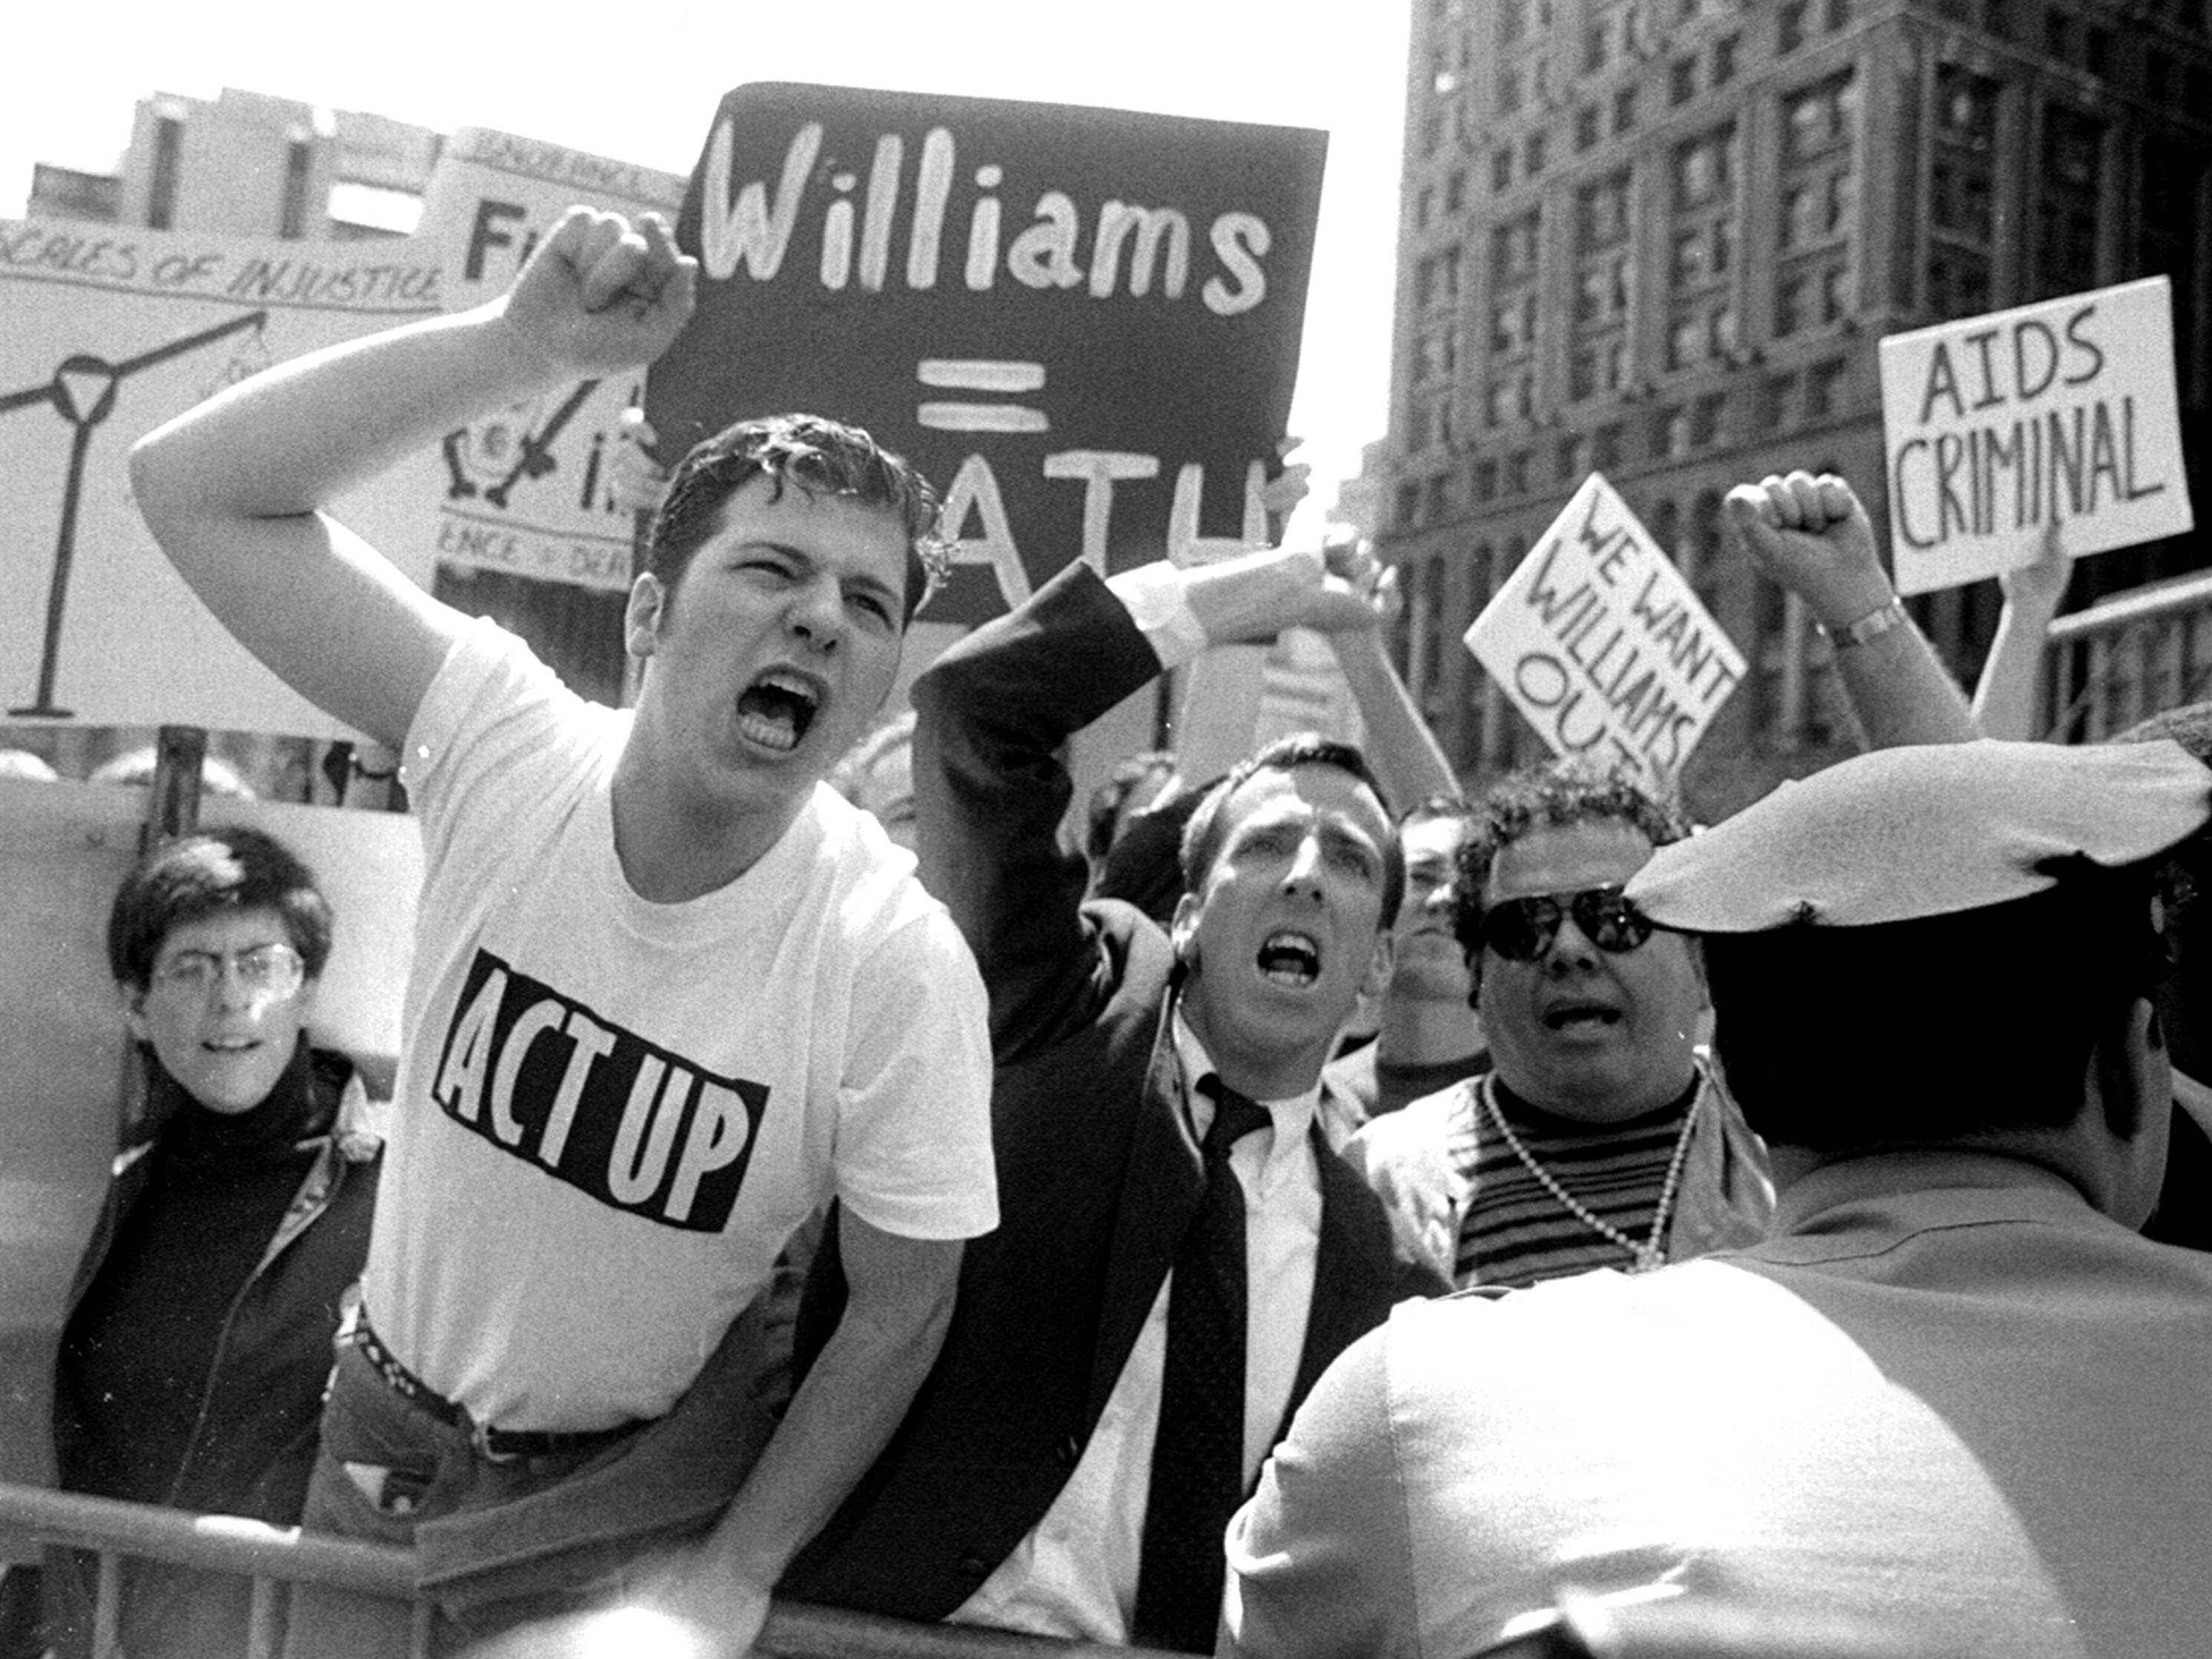 ACT UP protesters in front of City Hall in New York in 1992.     (New York Daily News Archive/NY Daily News via Getty Images)